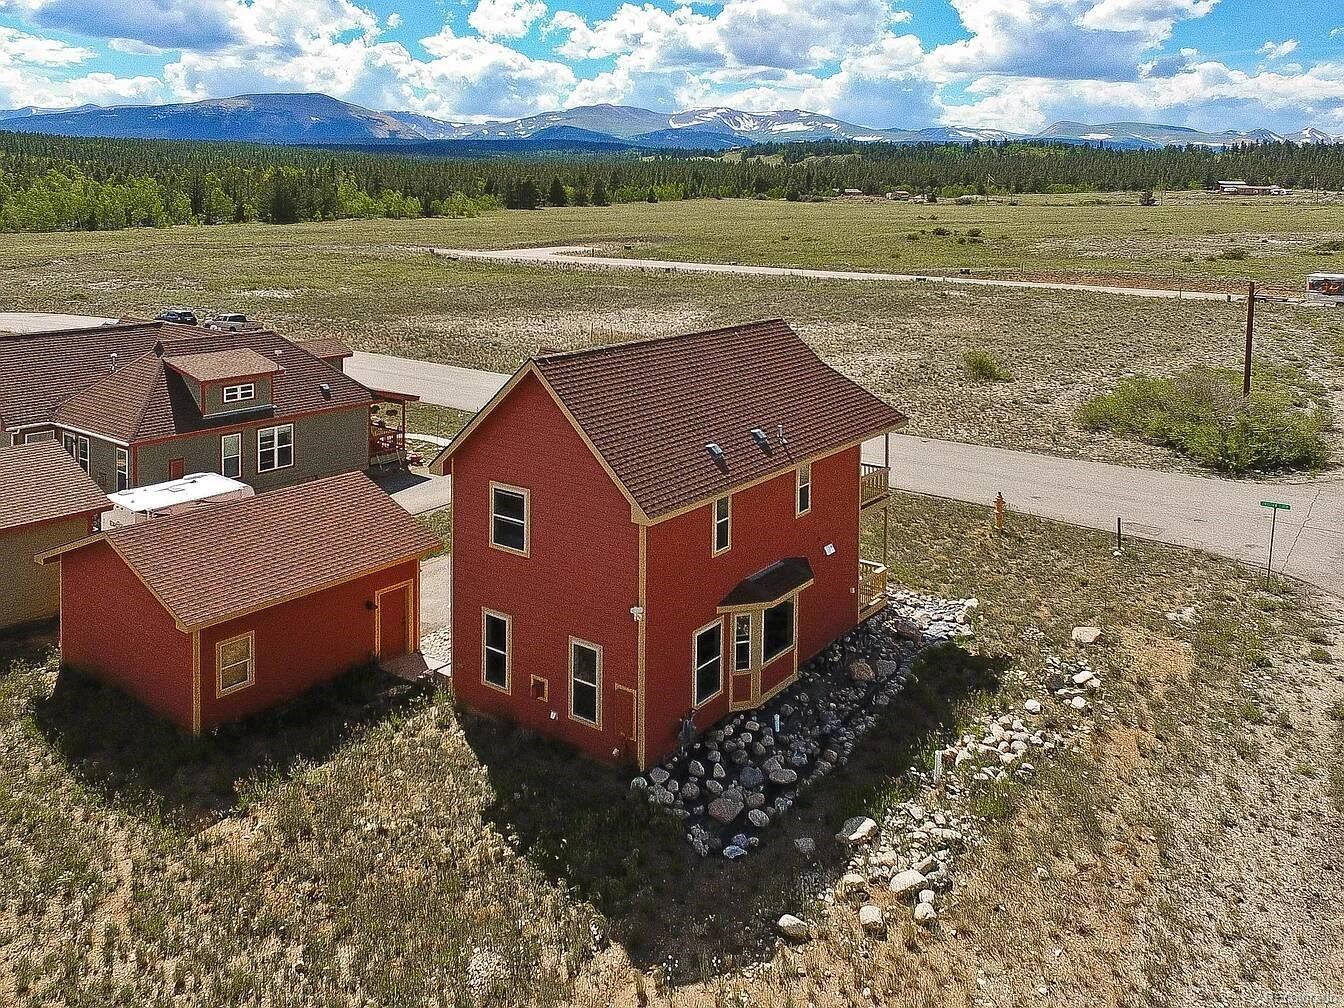 MLS# 6952192 - 18 - 664 Tristan Loop, Fairplay, CO 80440